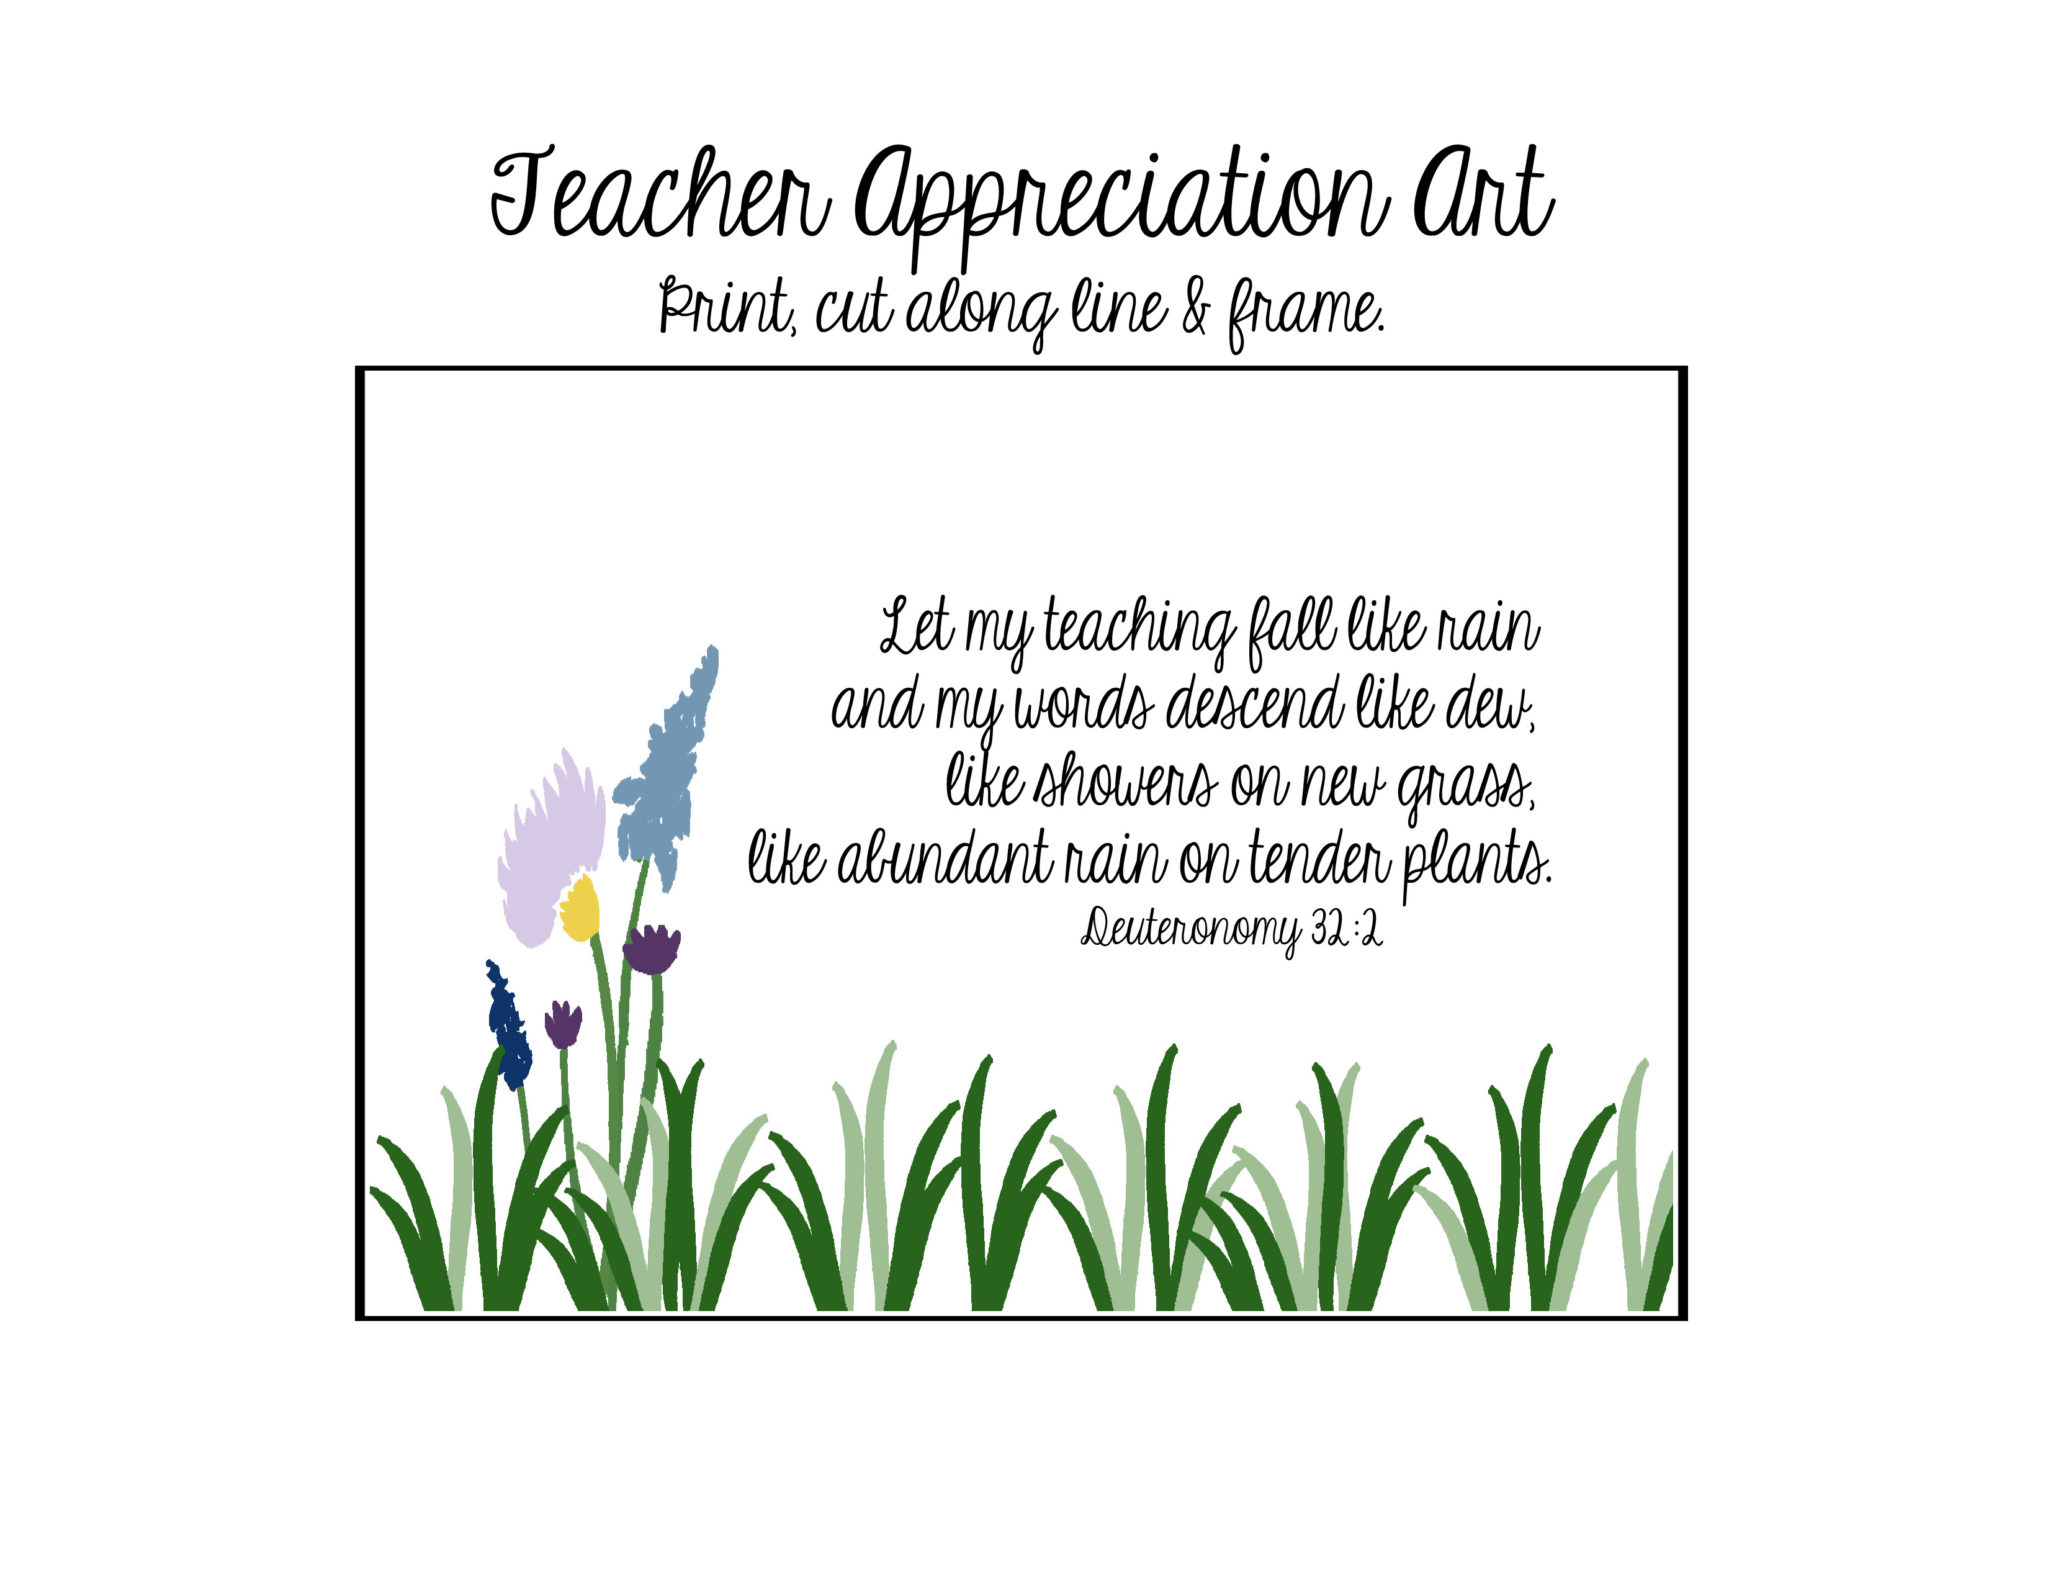 This is a picture of Geeky Teacher Appreciation Printable Card